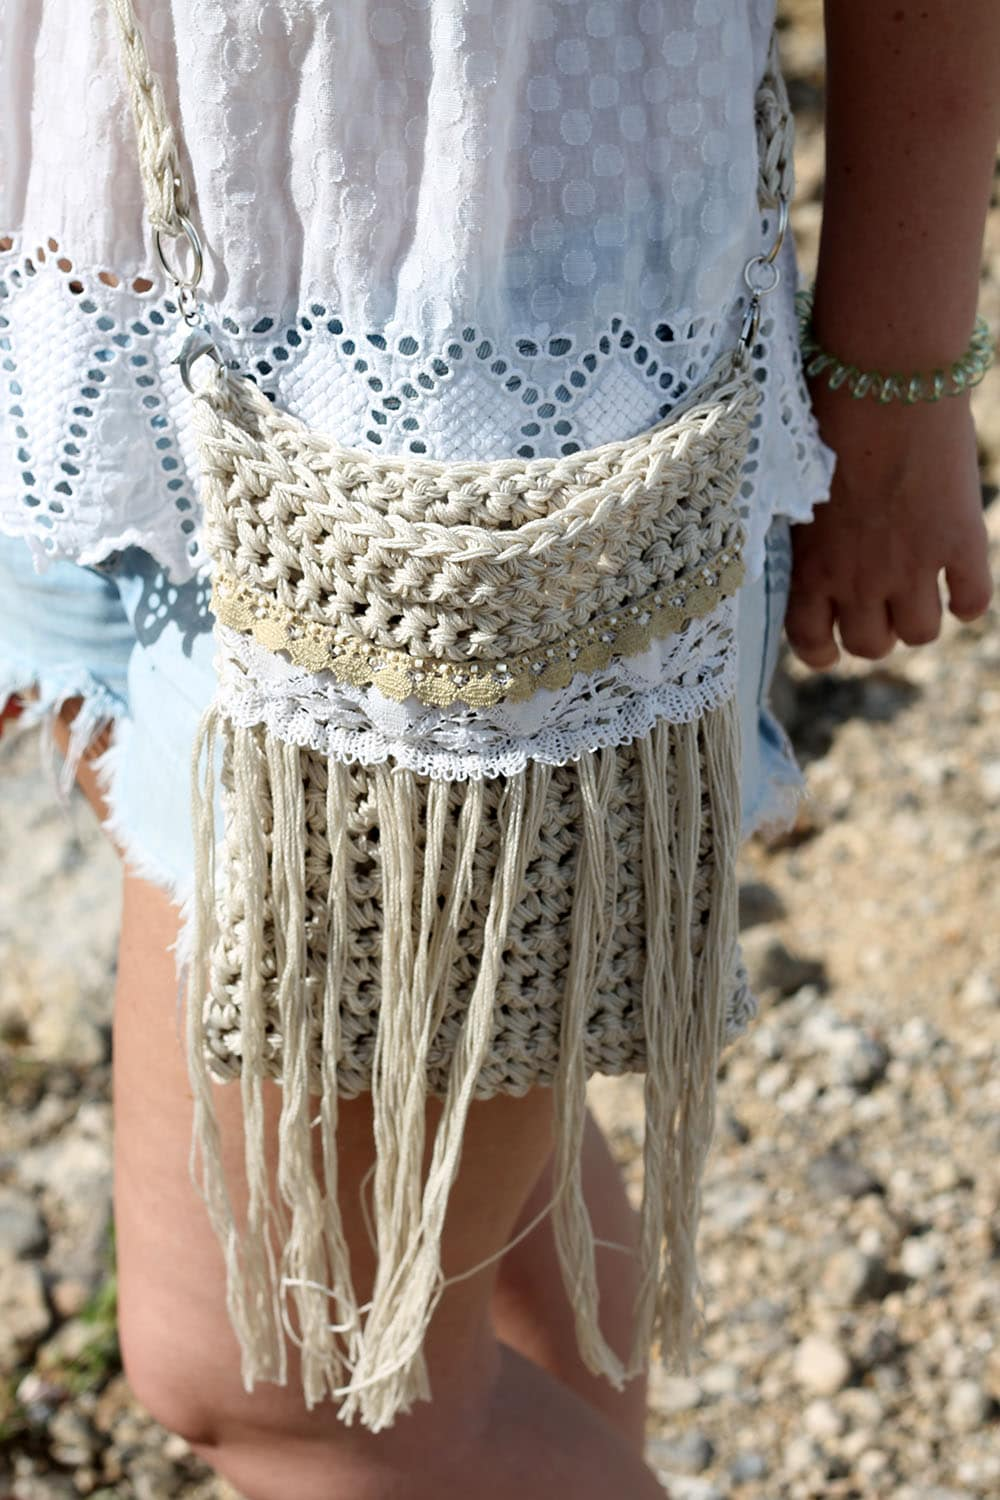 30-adorable-design-ideas-for-crocheted-hand-bags-new-2019